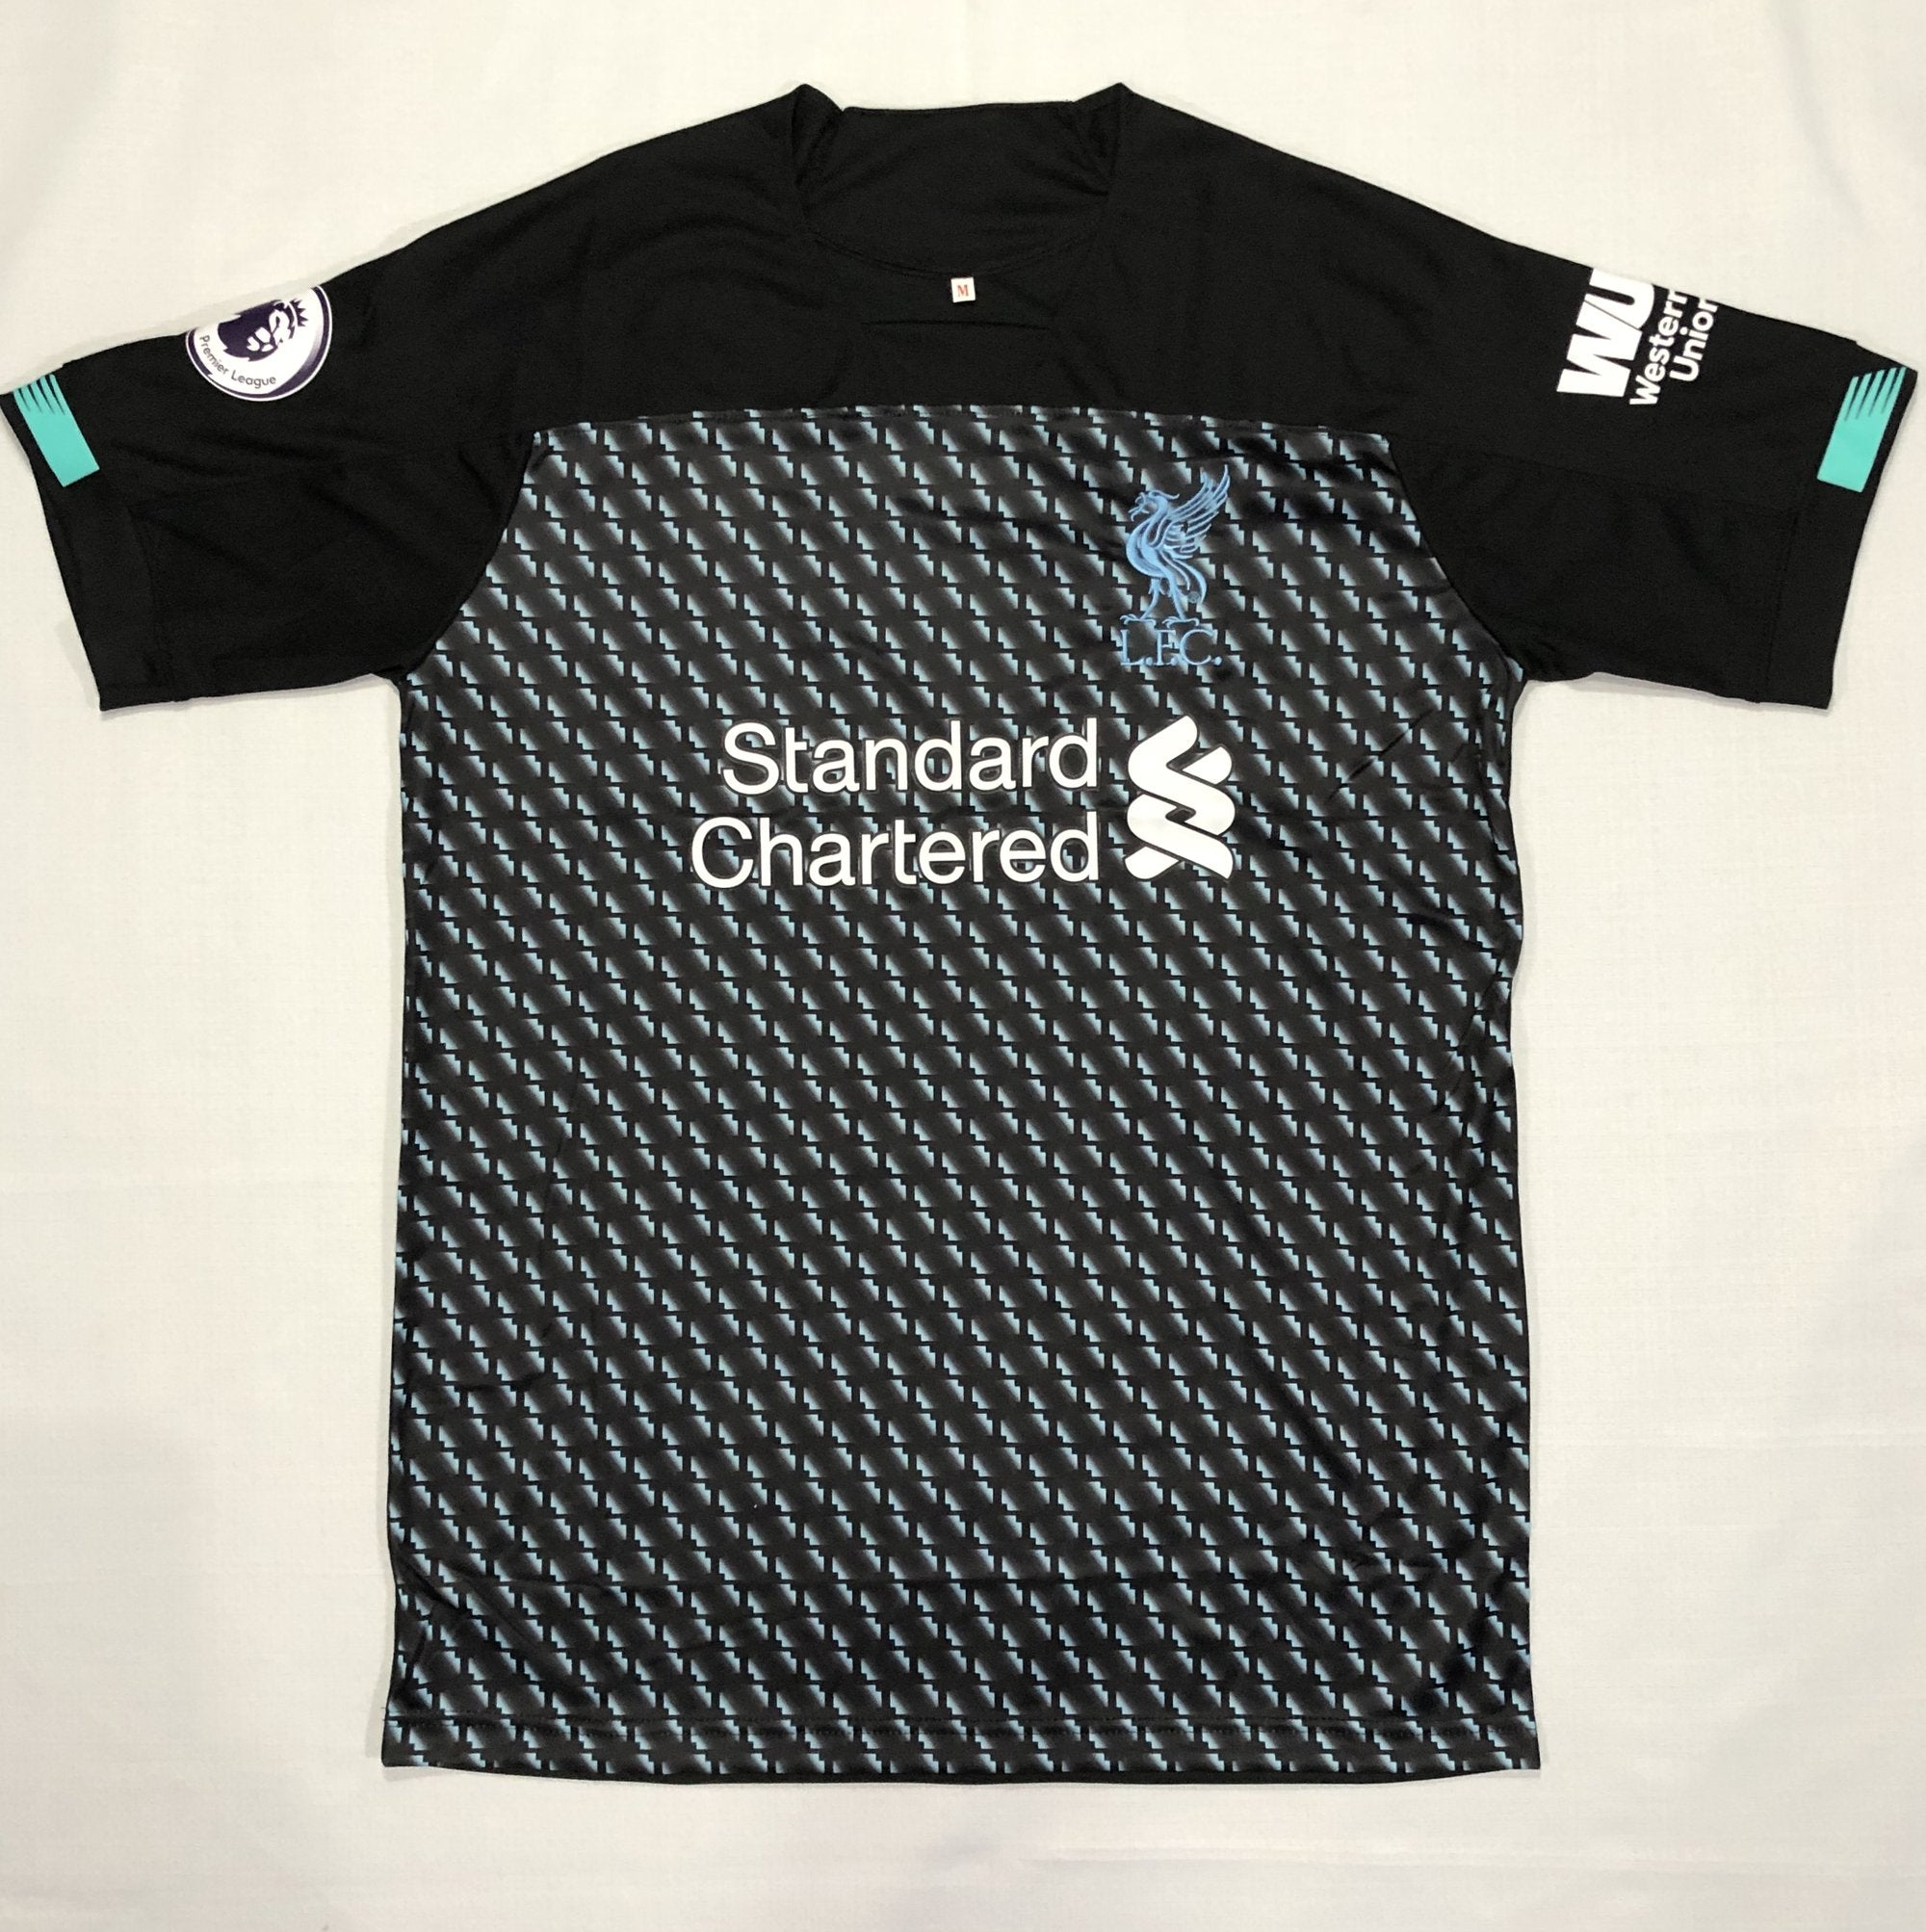 Liverpool 3rd 2019/20 Adult Shirt ~ Replica Version